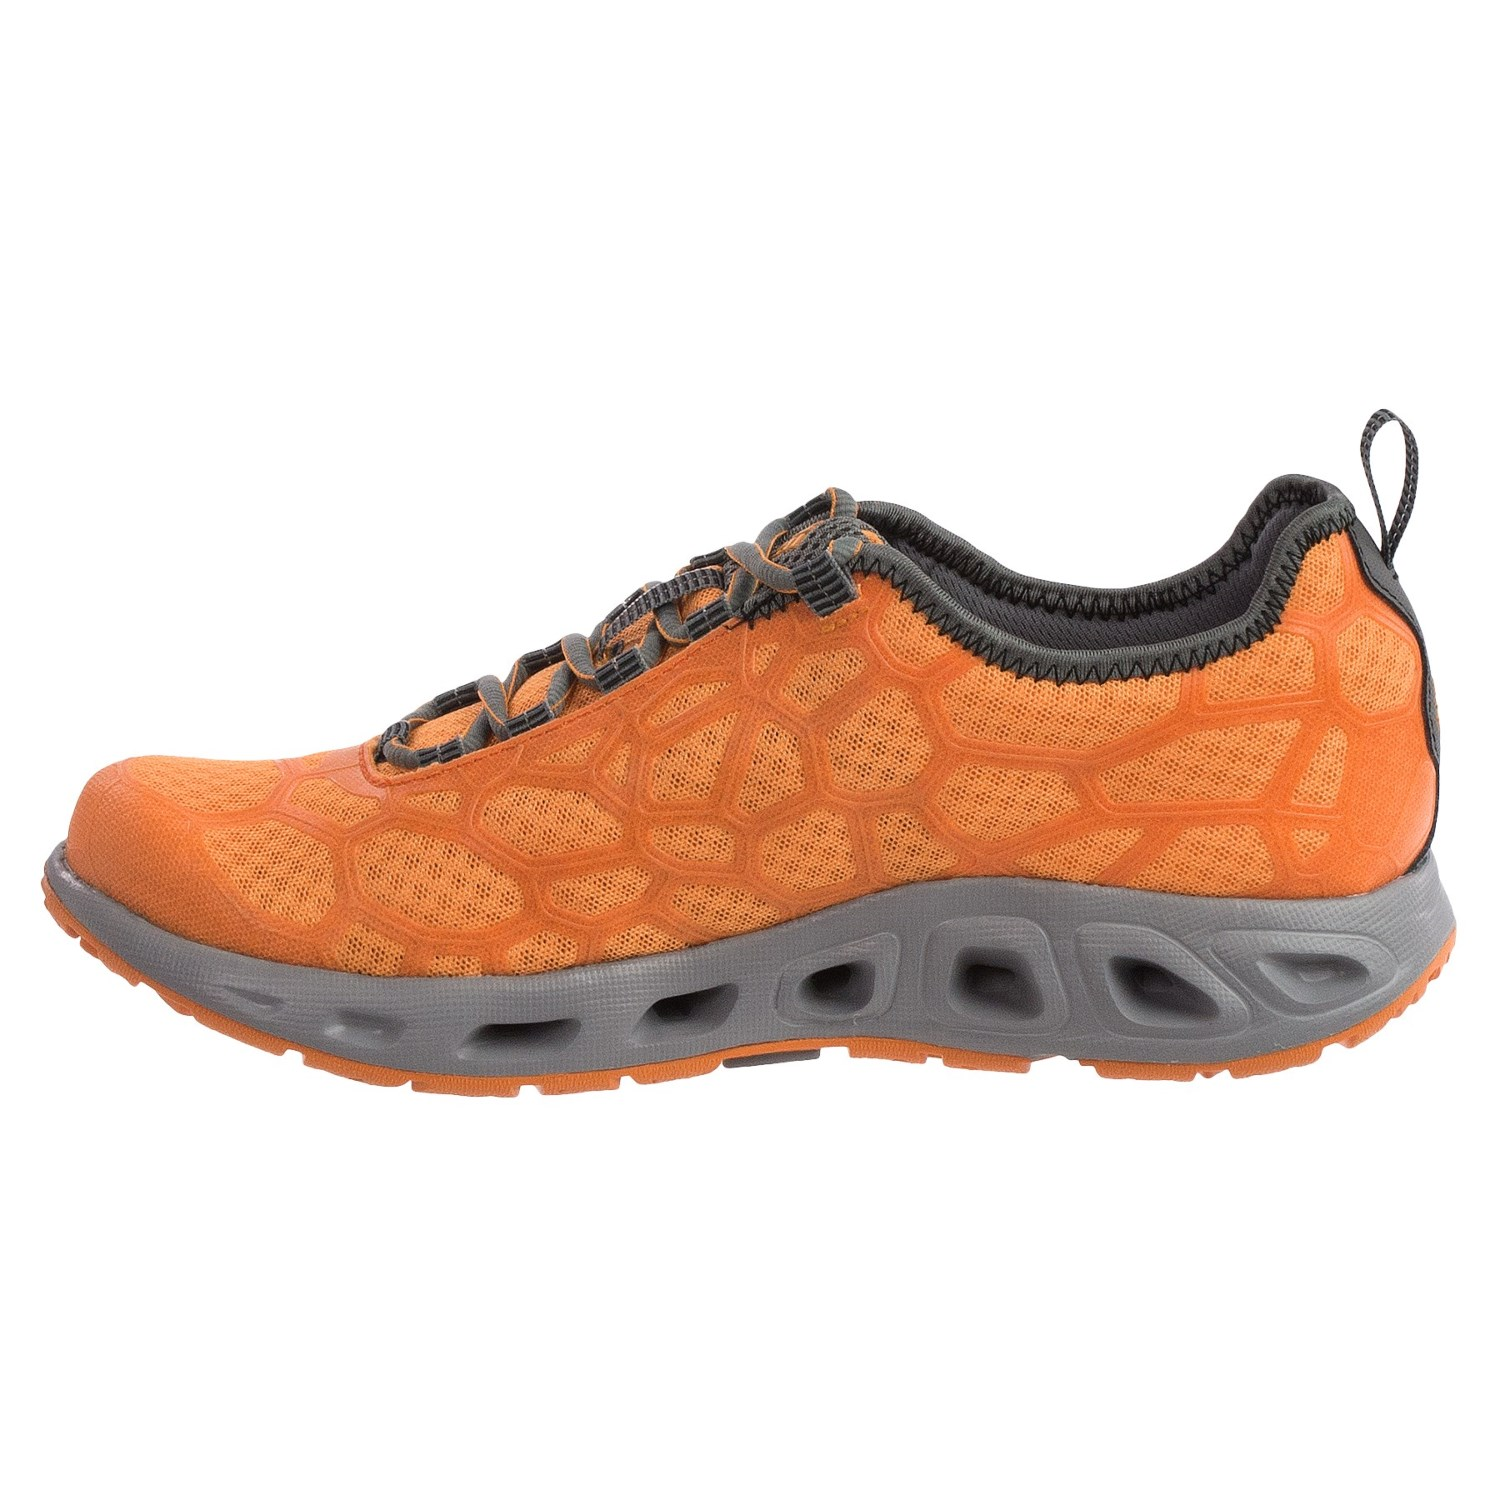 columbia sportswear megavent water shoes for